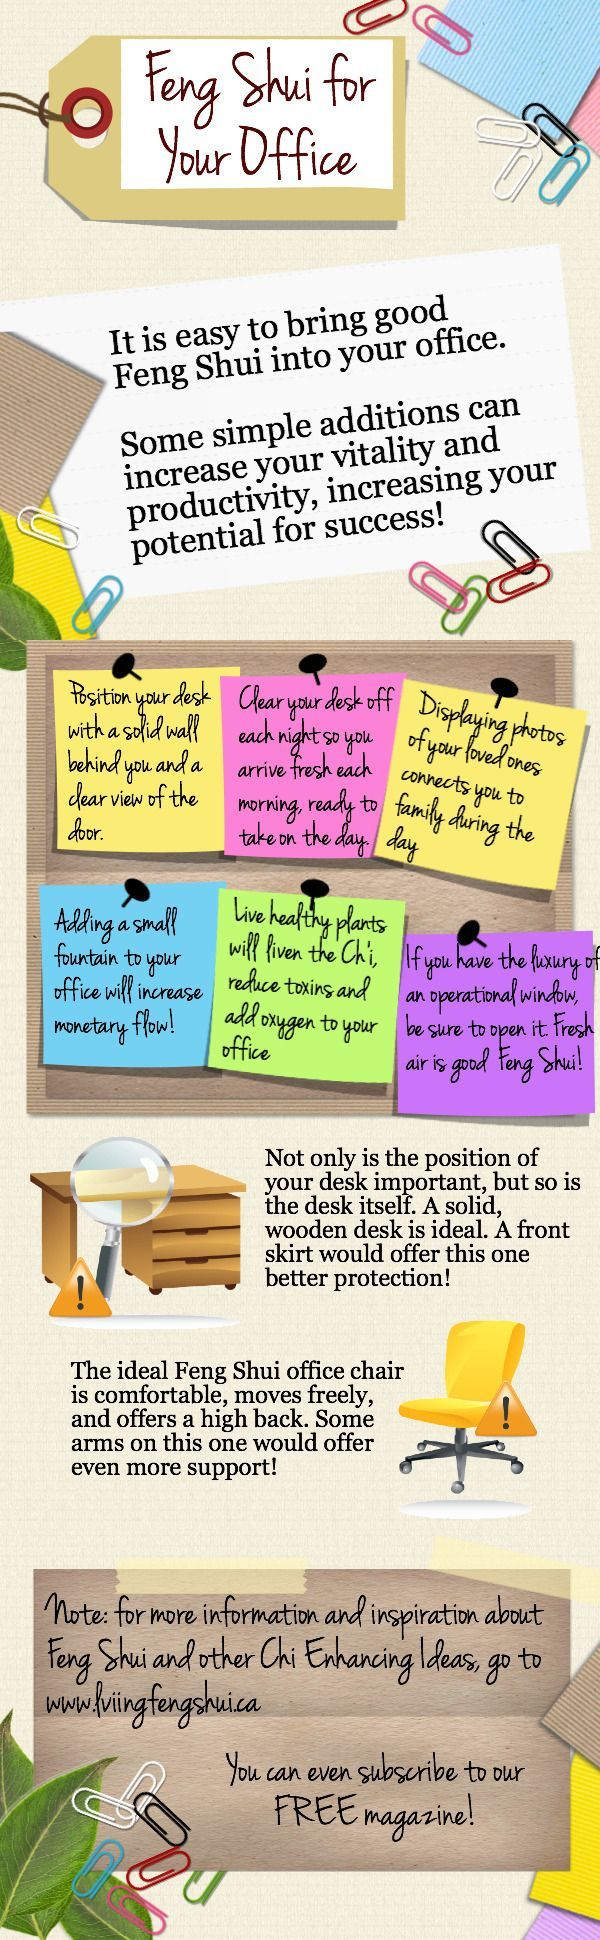 office feng shui tips. Some Quick Feng Shui Tips For The Office. Office Z